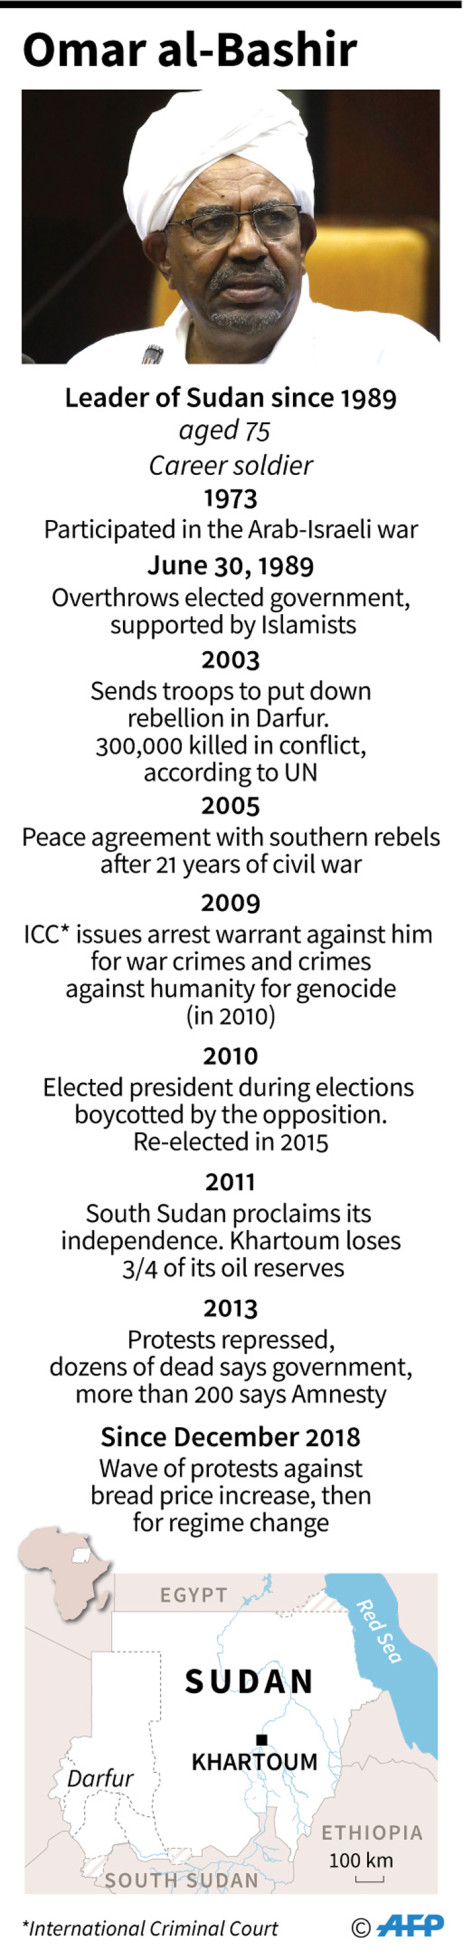 Key dates in the life of Omar al-Bashir, leader of Sudan since 1989. Picture: AFP